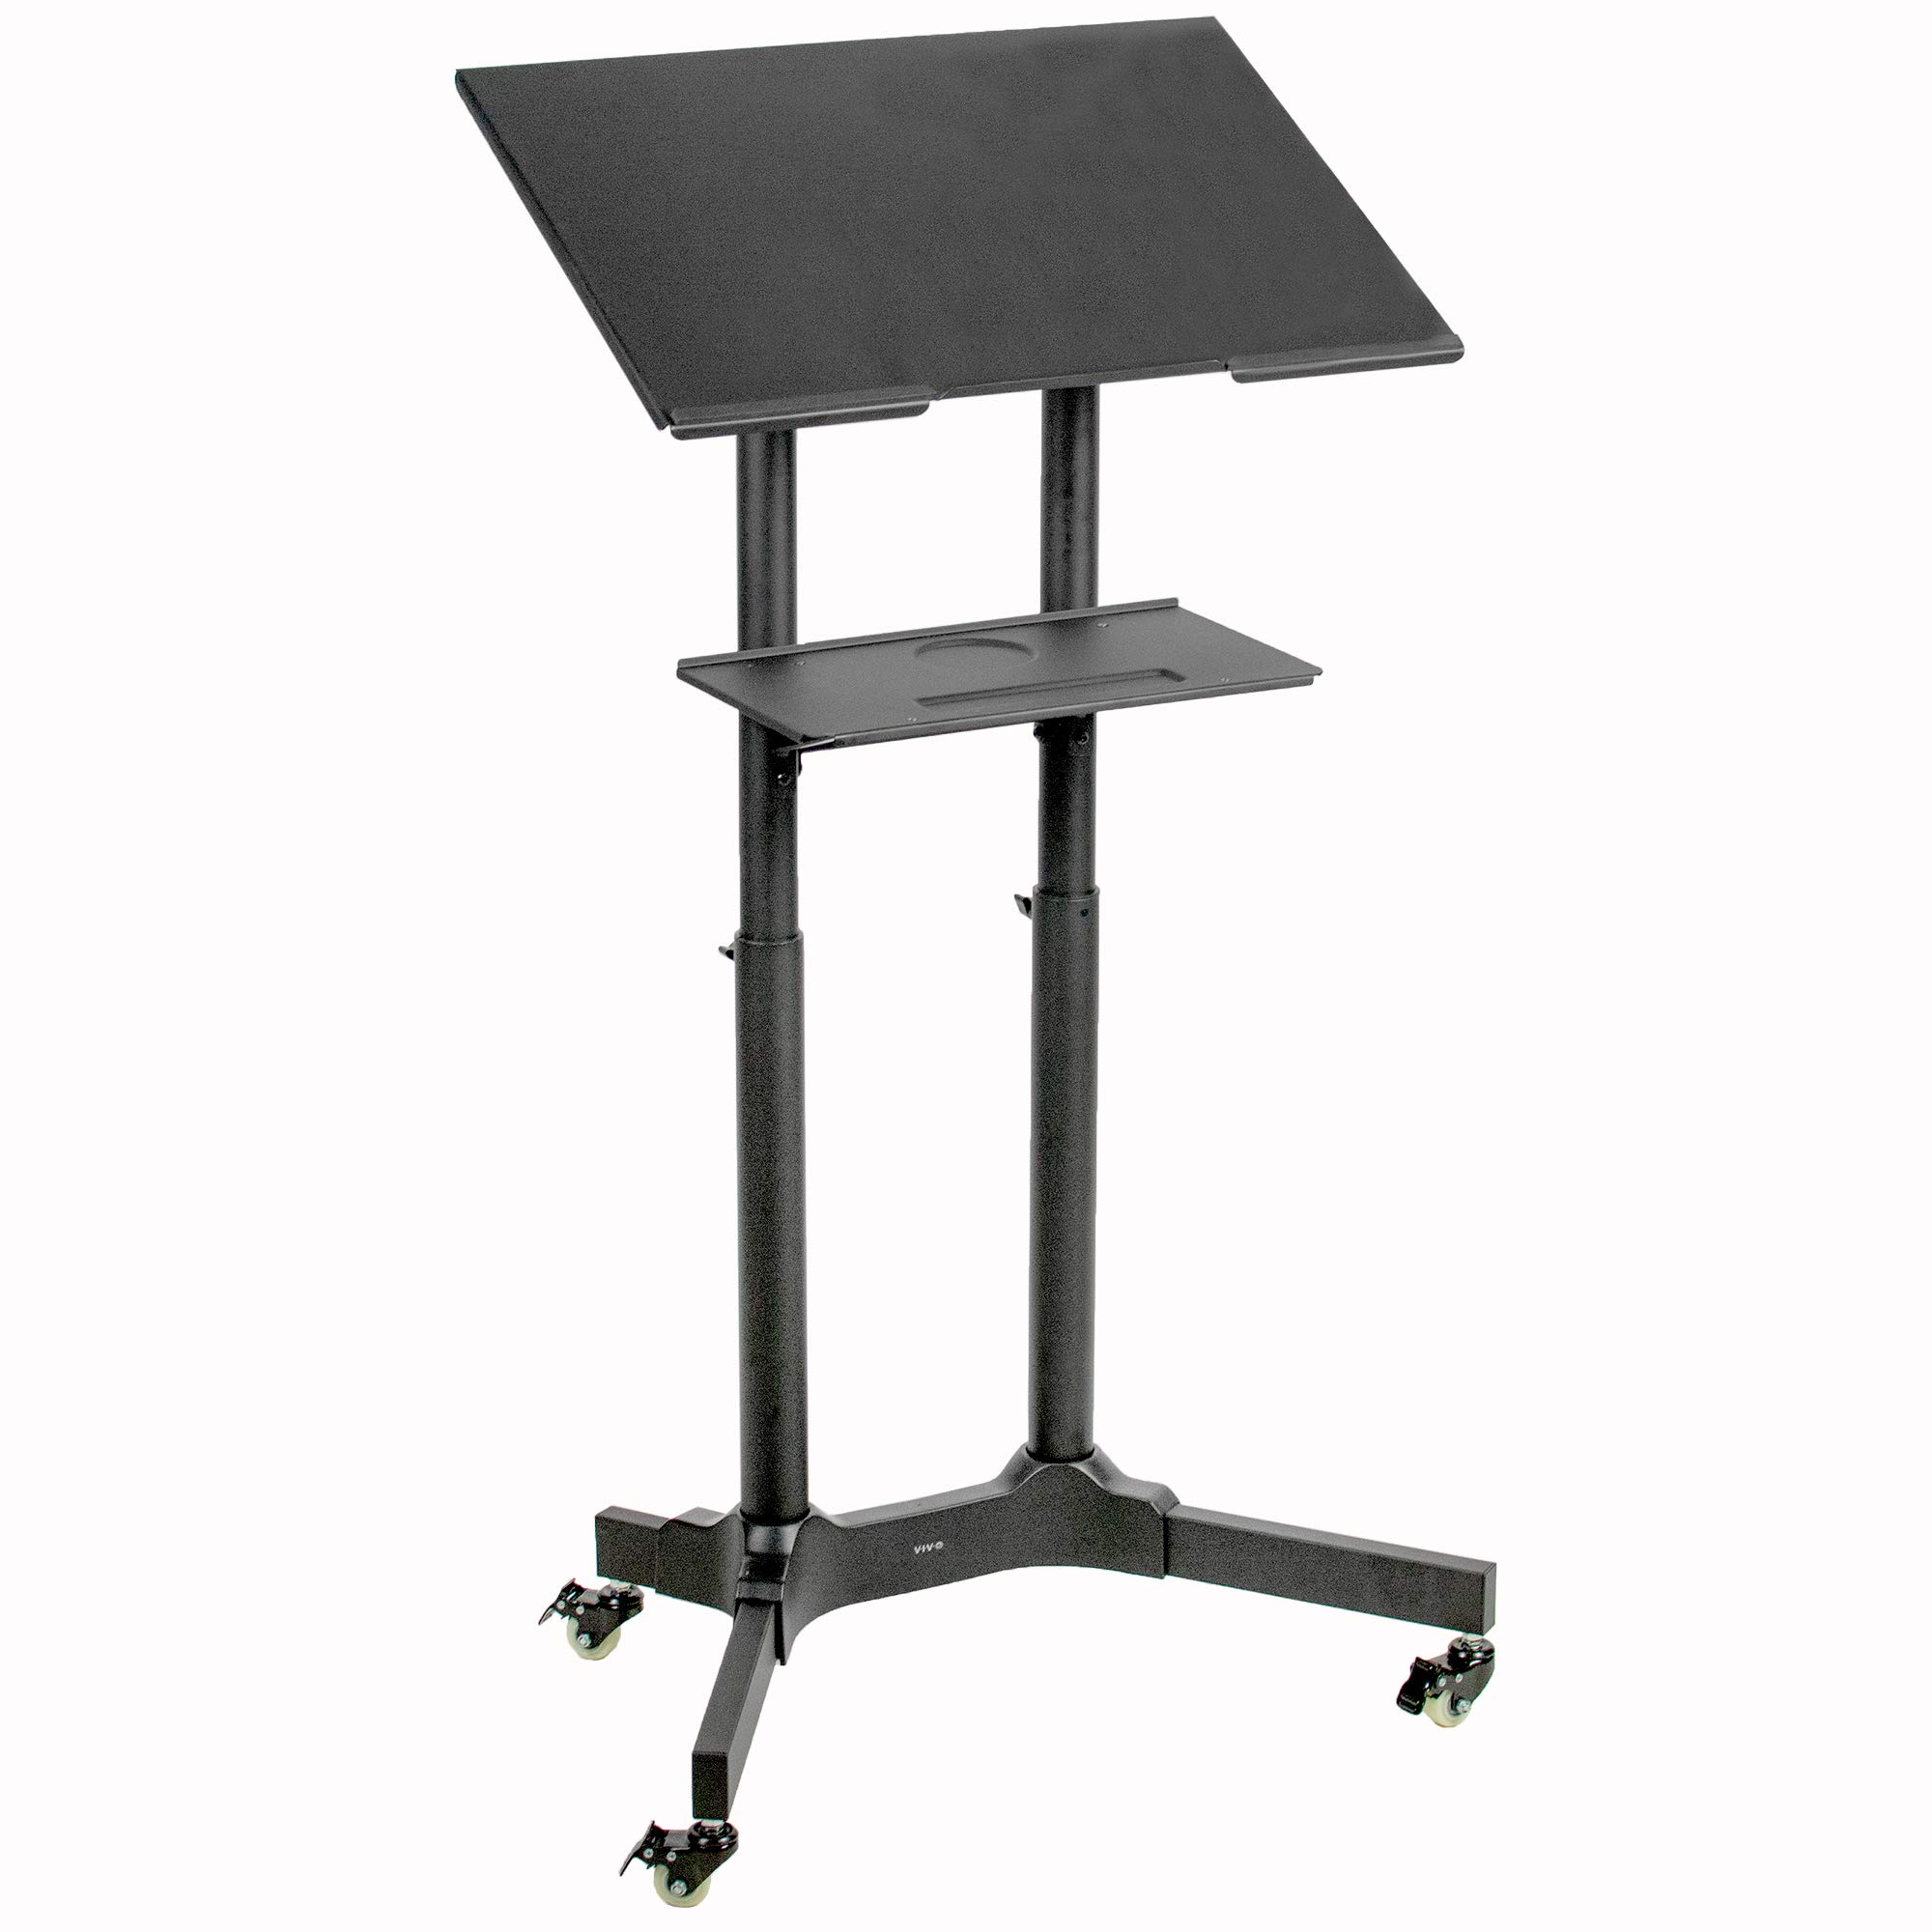 VIVO Black Steel Mobile 24 inch Height Adjustable Multi-Purpose Rolling Podium, Lectern, and Laptop Workstation Desk with Storage Tray (CART-V03E)